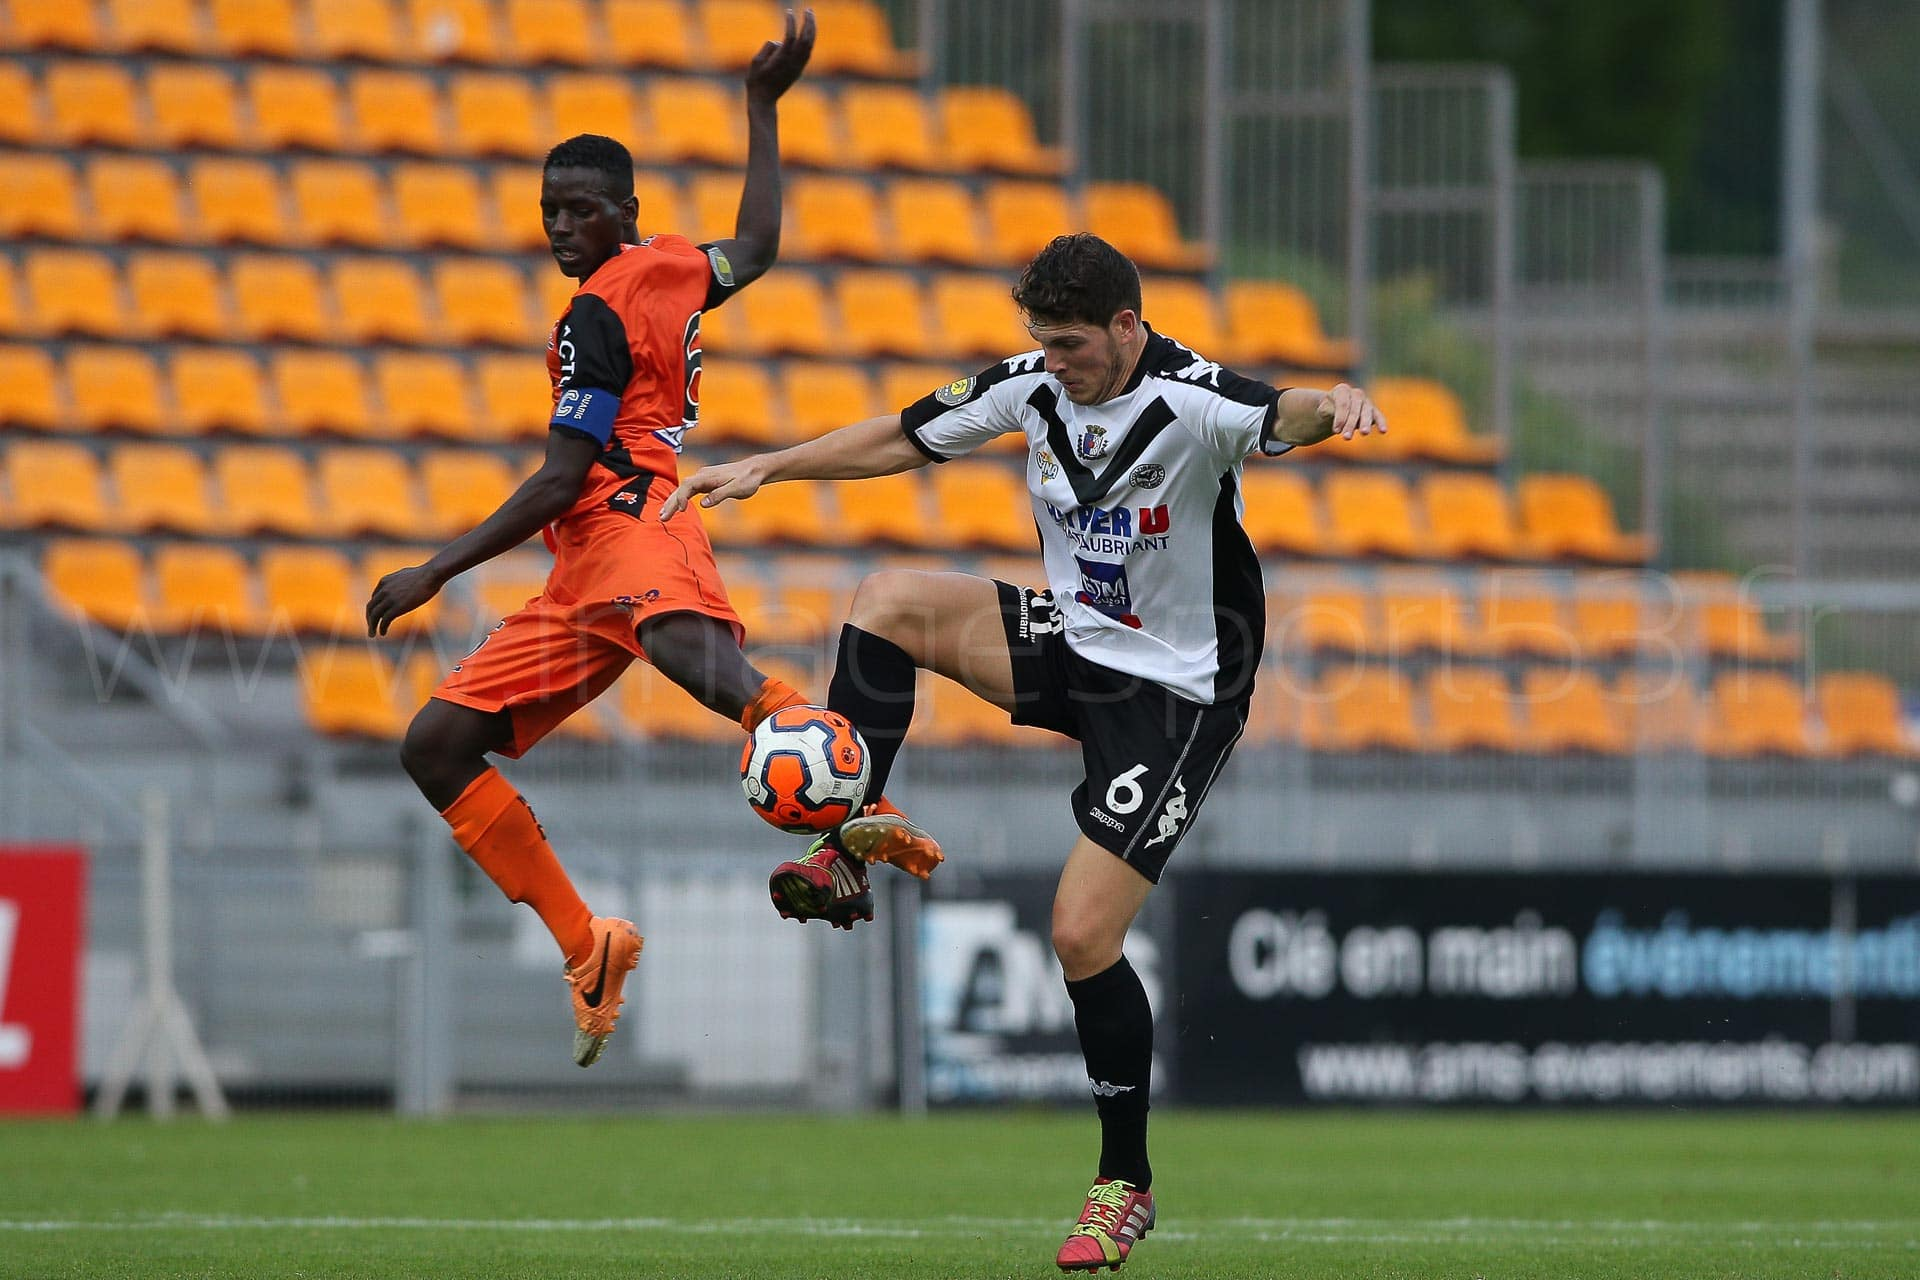 NG-CFA2-1415-J03-Laval-Chateaubriant_21